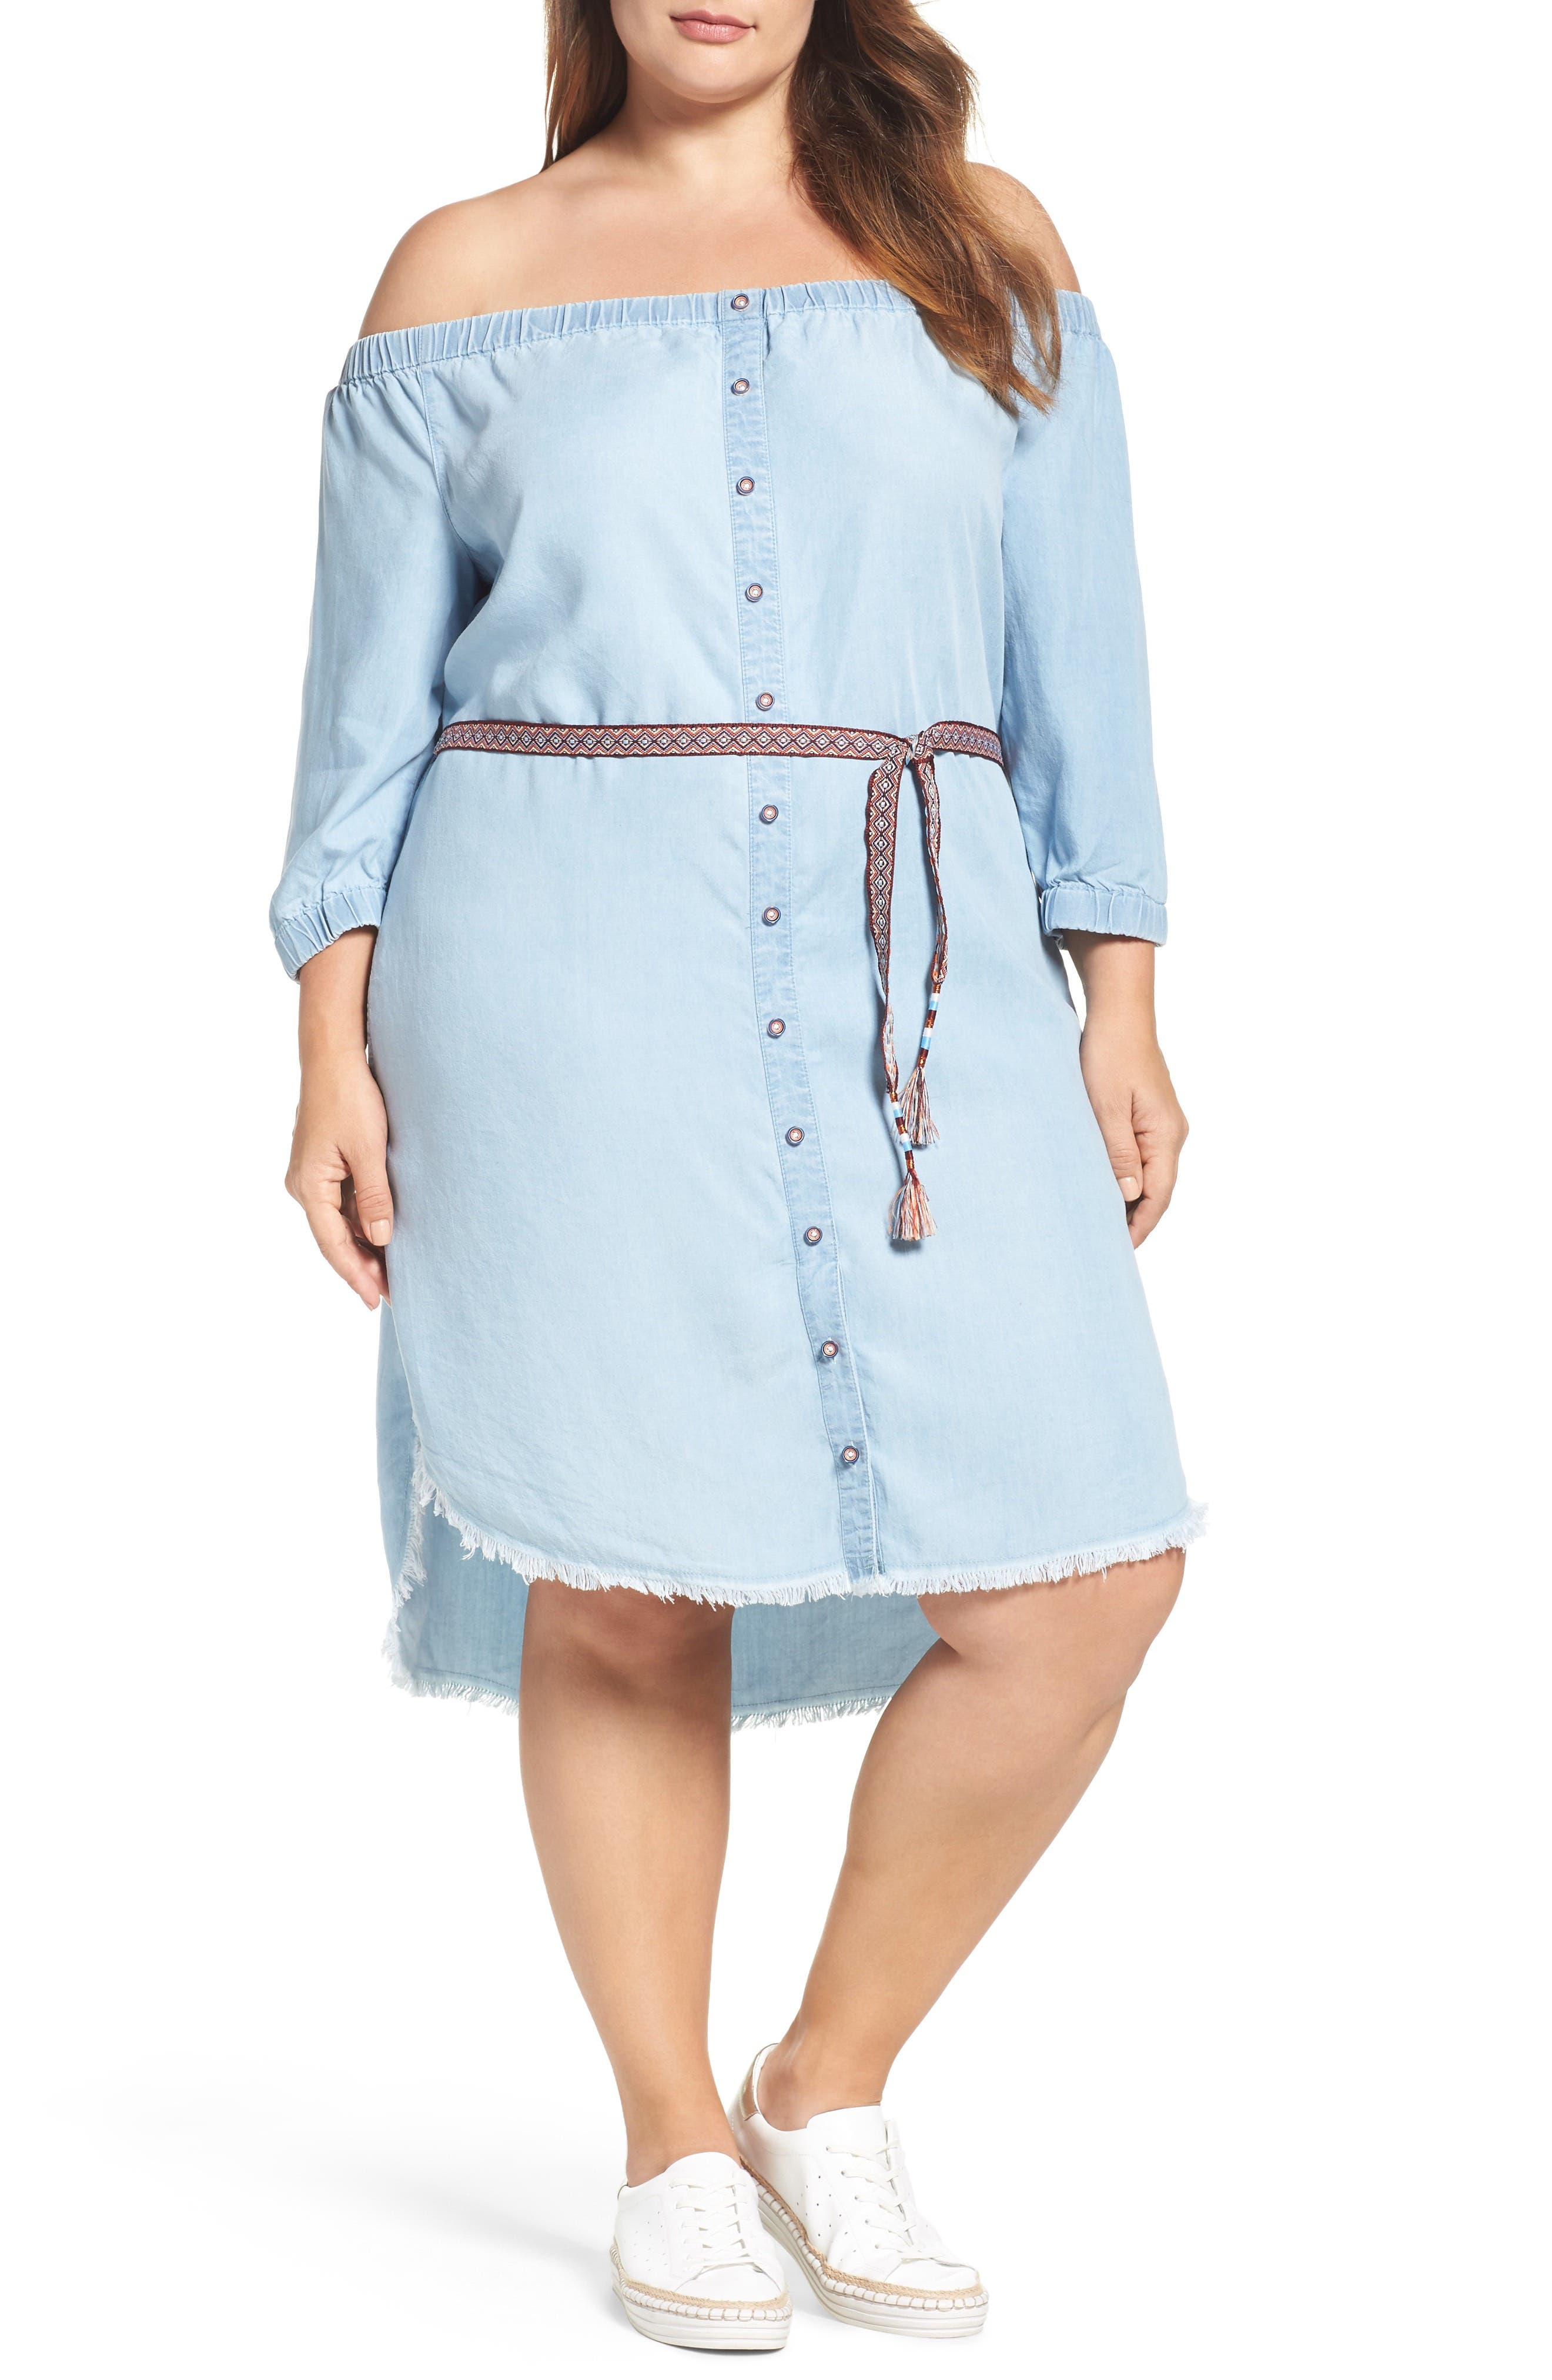 Democracy Chambray Off the Shoulder Shirtdress (Plus Size)